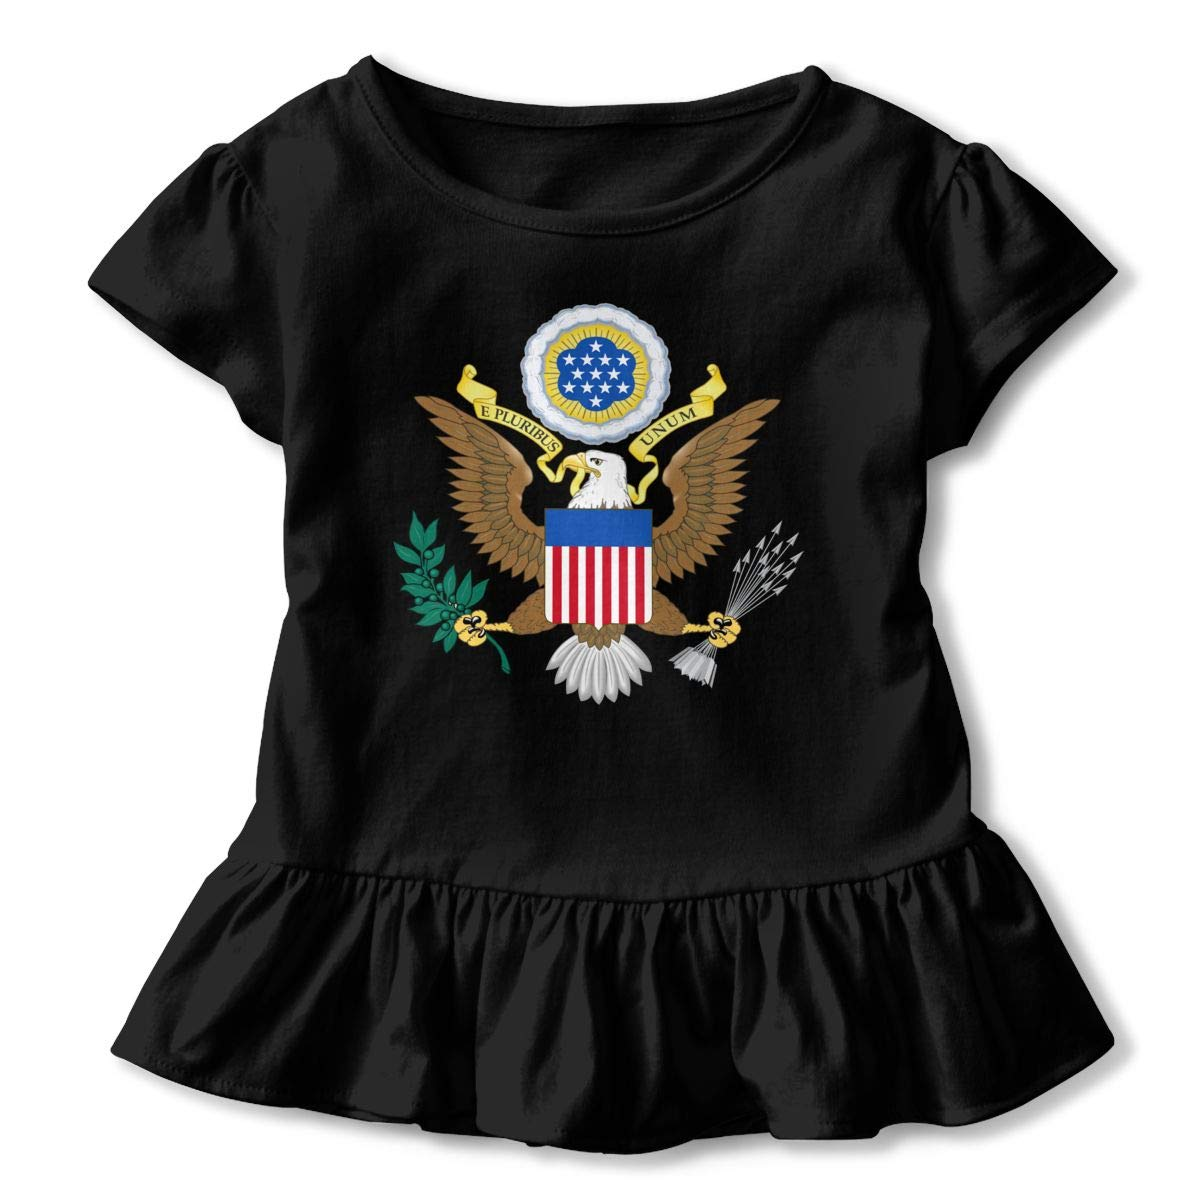 Political Parties in The United States Shirt Design Toddler Flounced T Shirts Graphic Tees for 2-6T Kids Girls